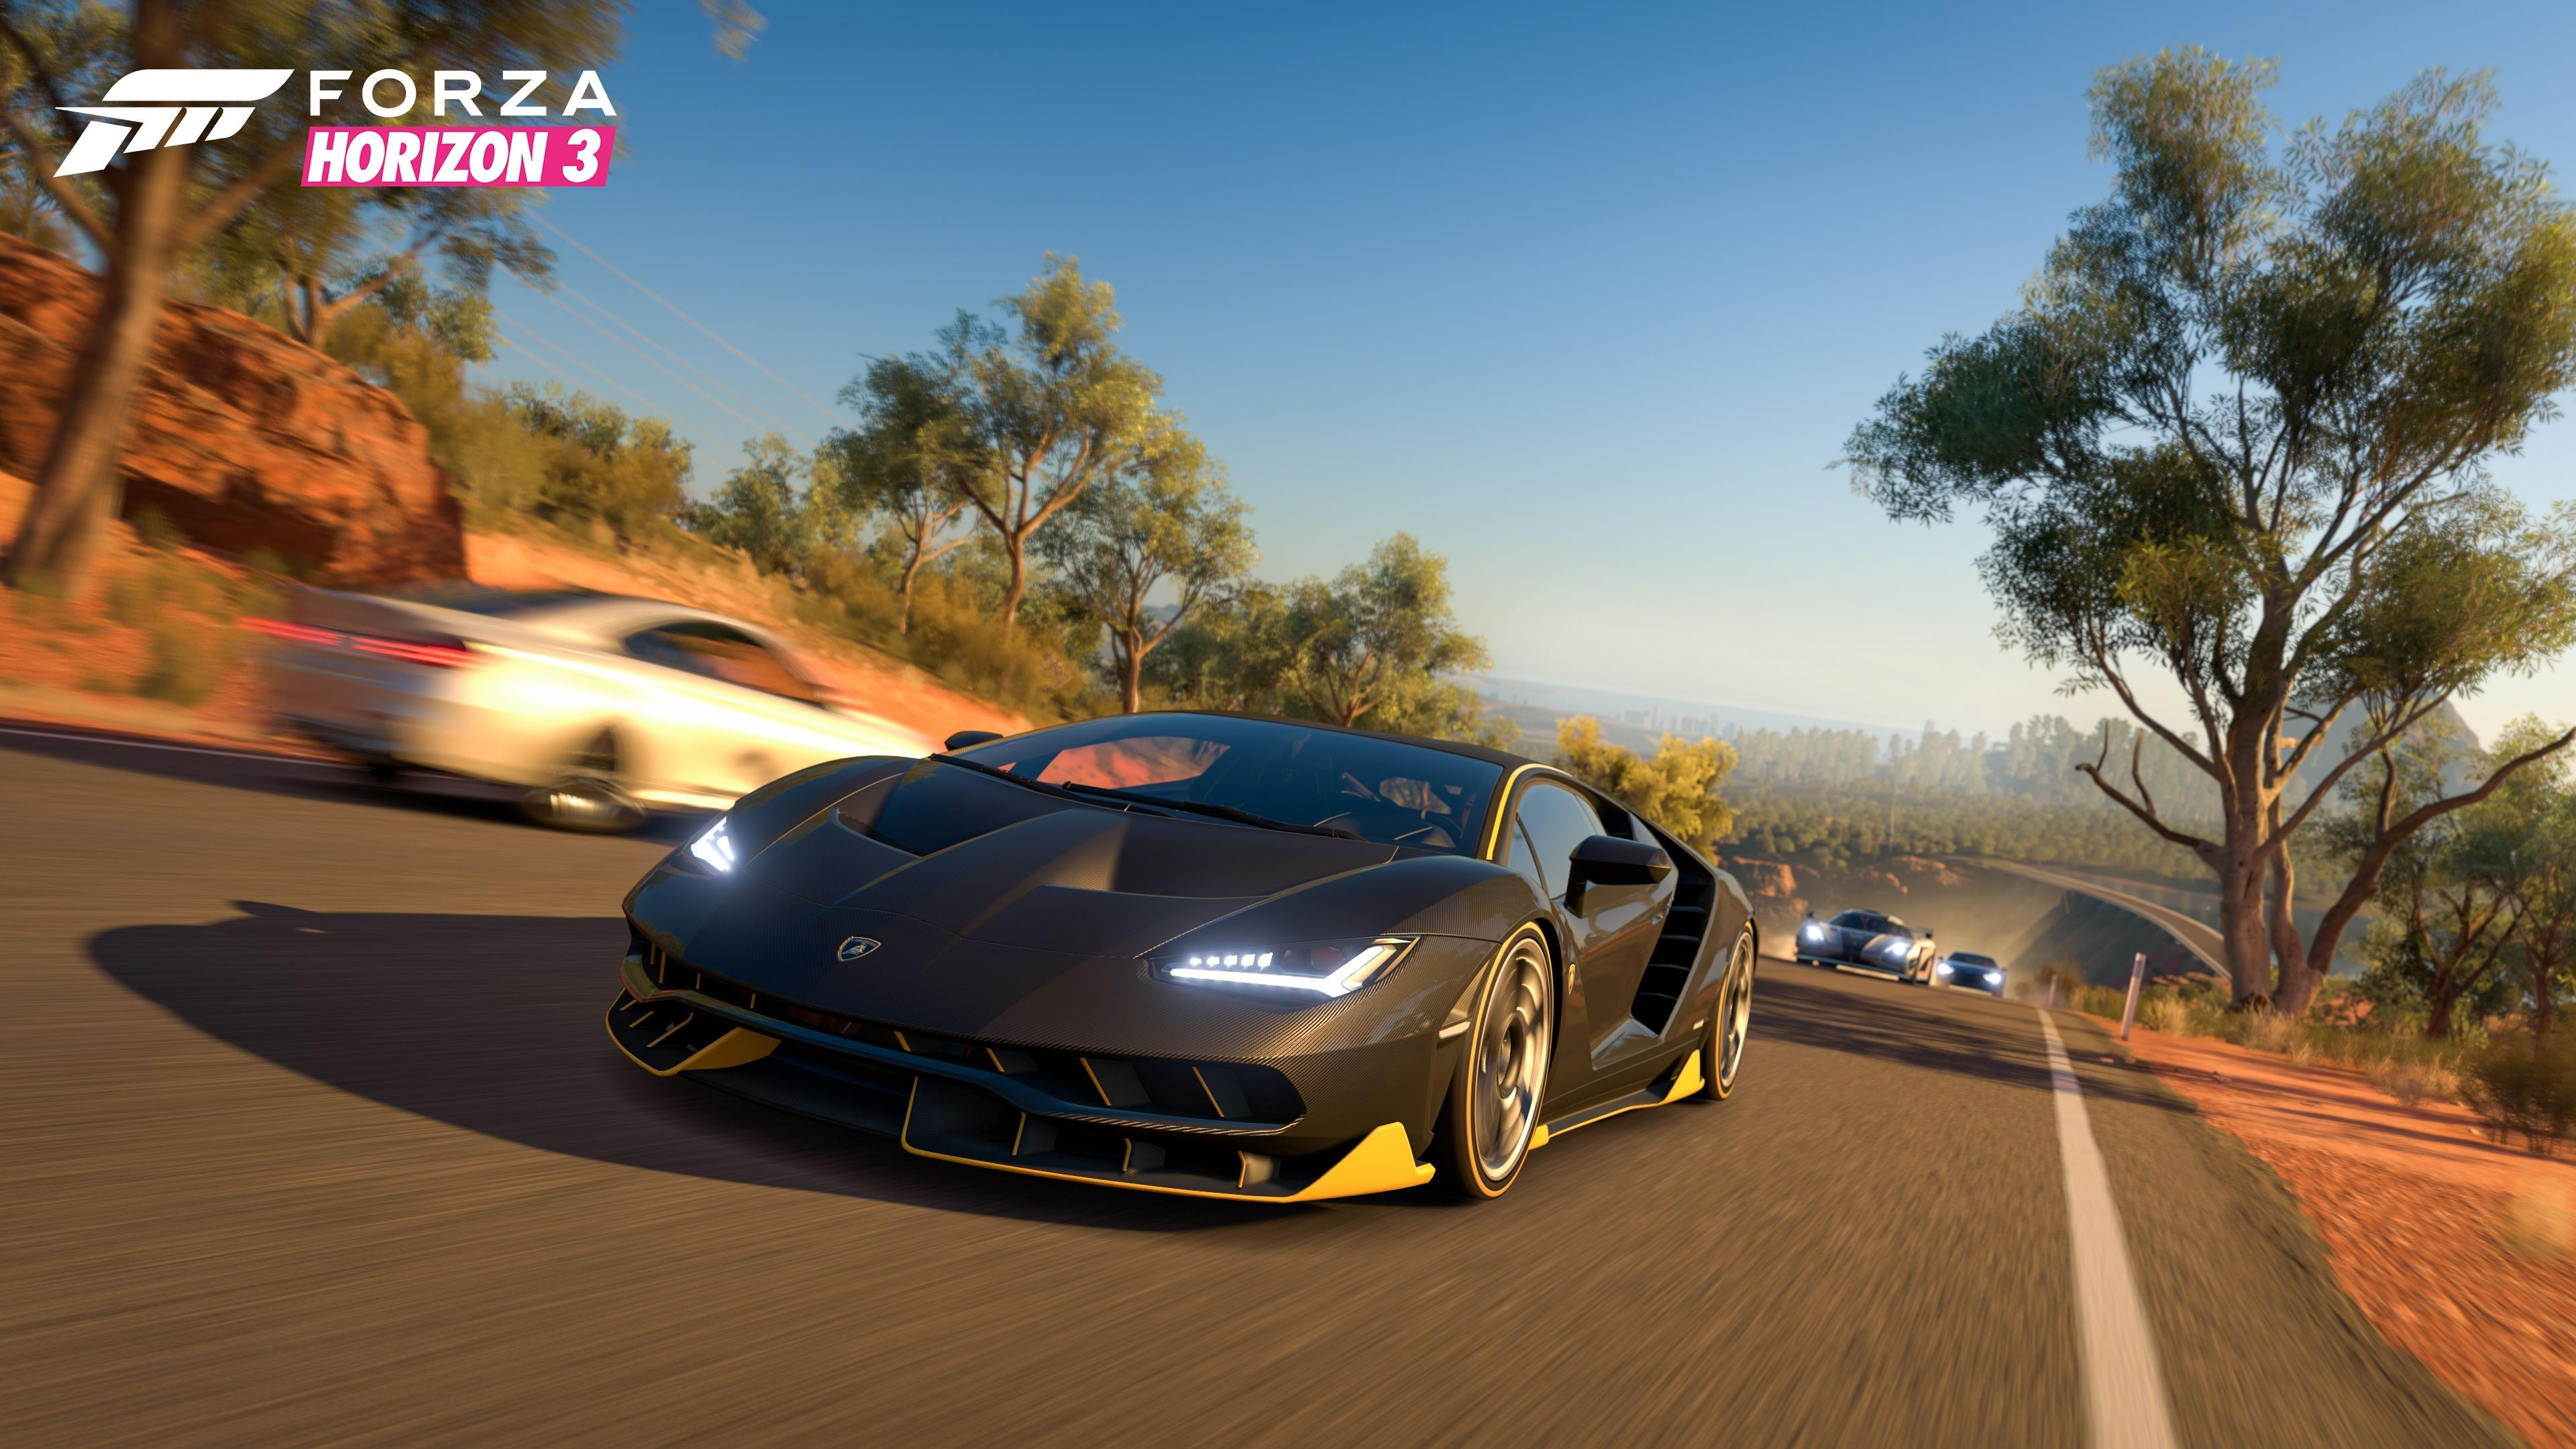 forza horizon 3 images for desktop background Clifford Black 2017 3840x2160